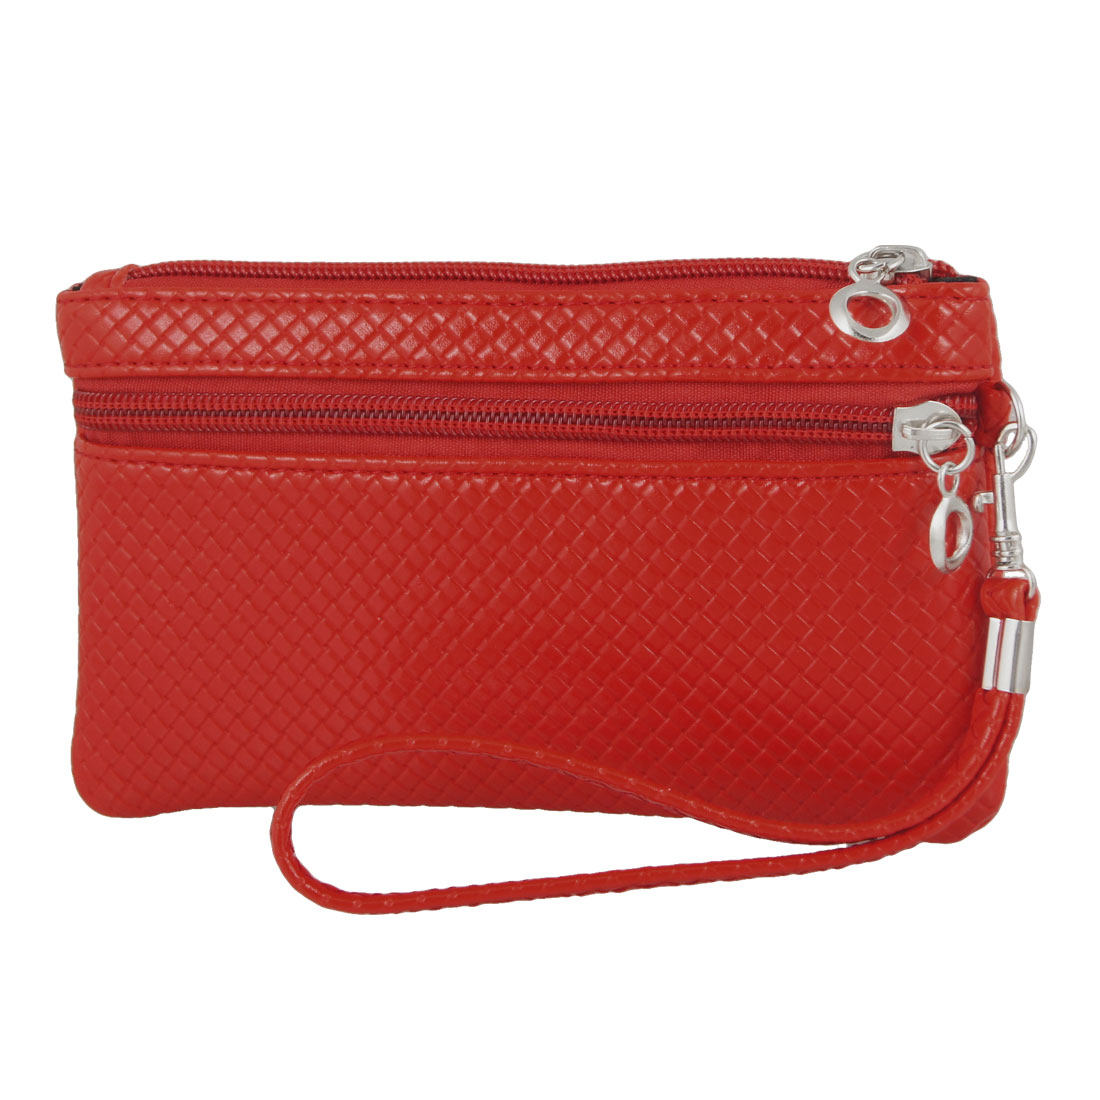 Rectangle Nylon Lining Faux Leather Weave Pattern Wallet Purse Red for Lady